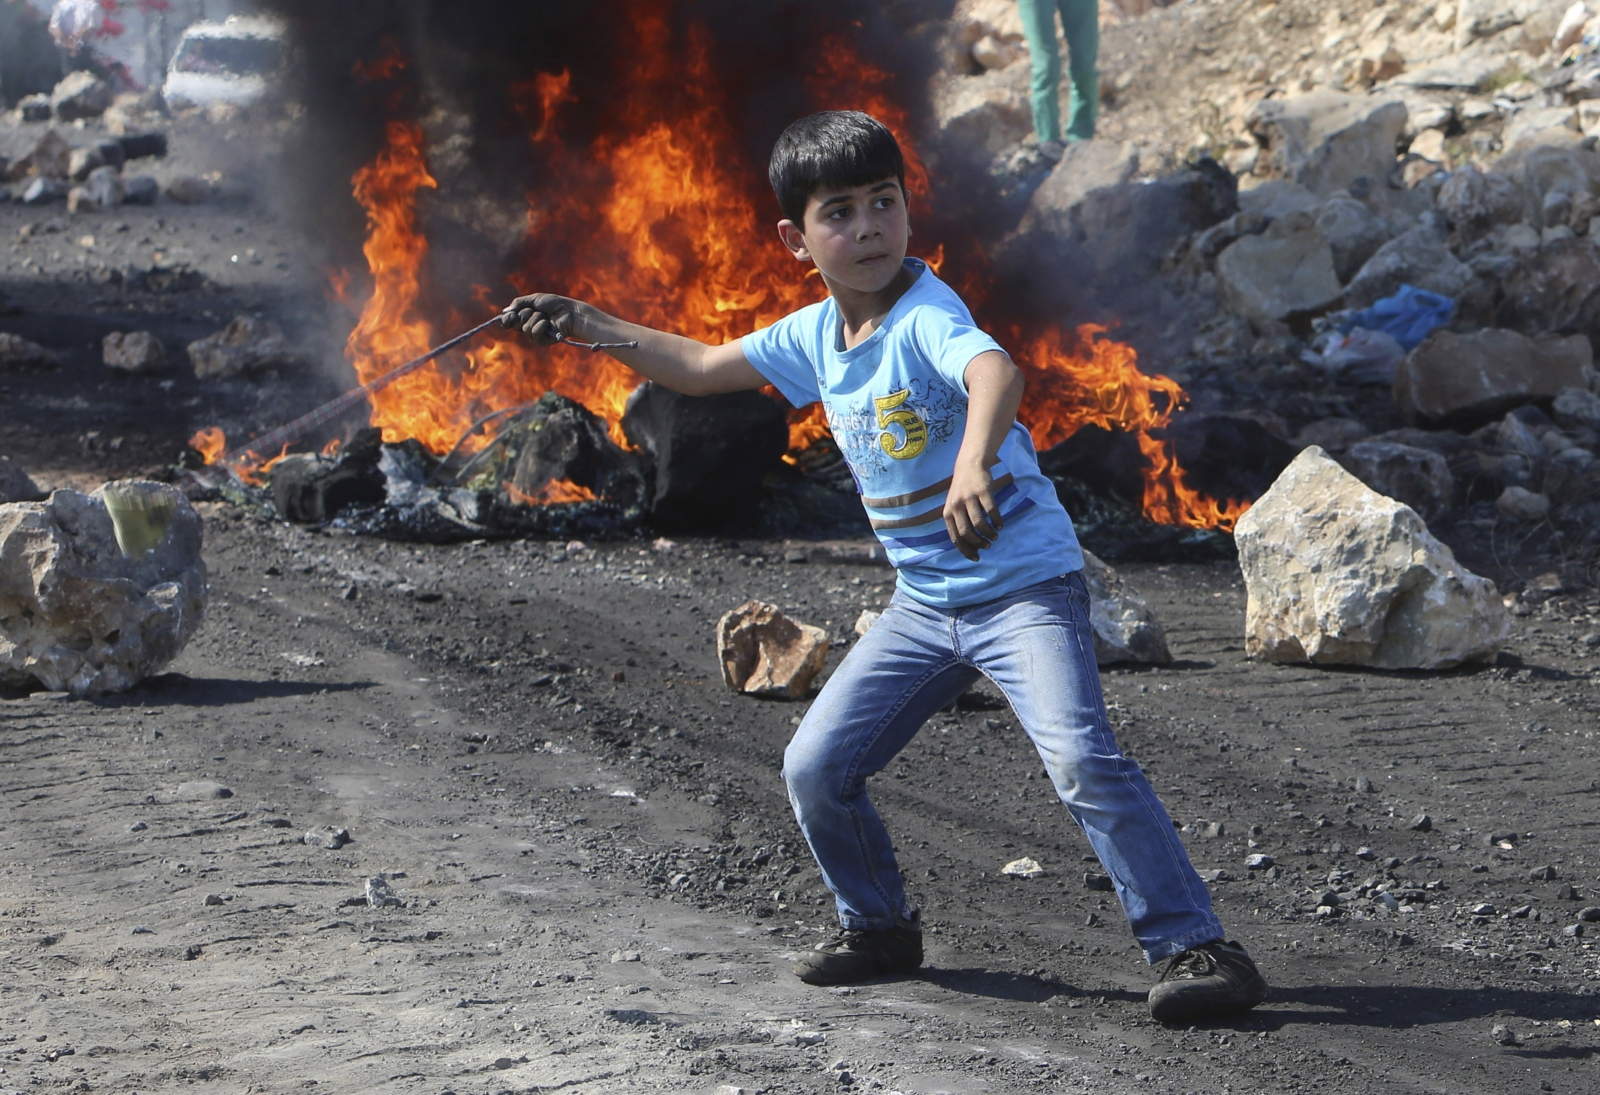 West Bank Clashes Orwah Hammad